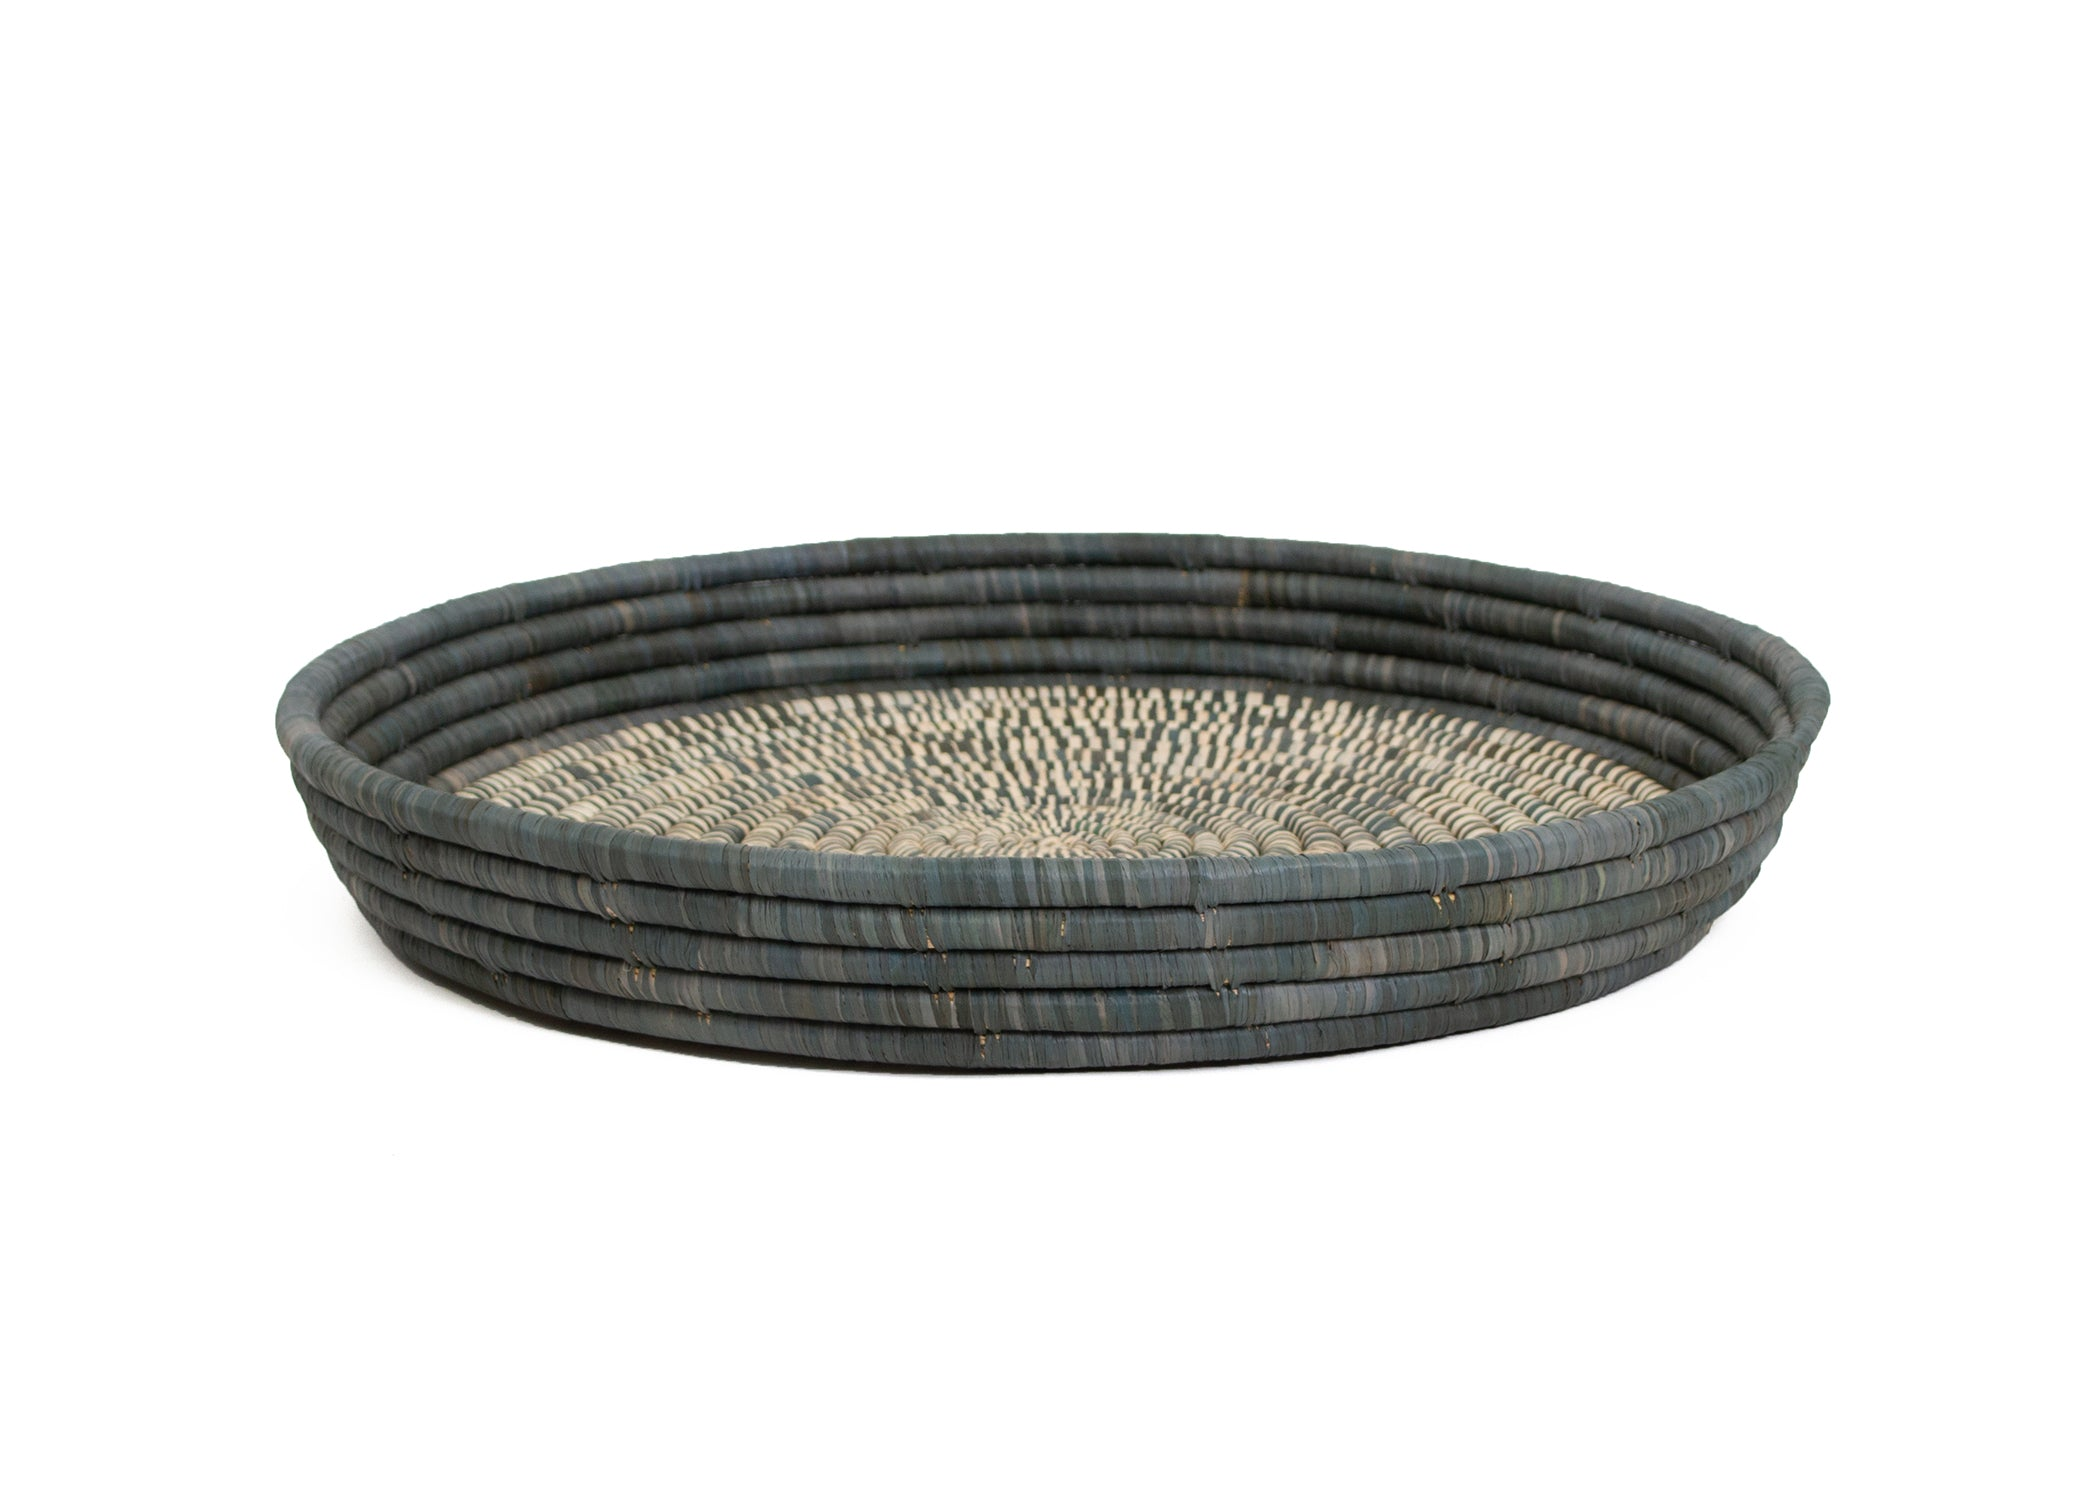 Carbon Heathered Raffia Tray - KAZI - Artisan made high quality home decor and wall art